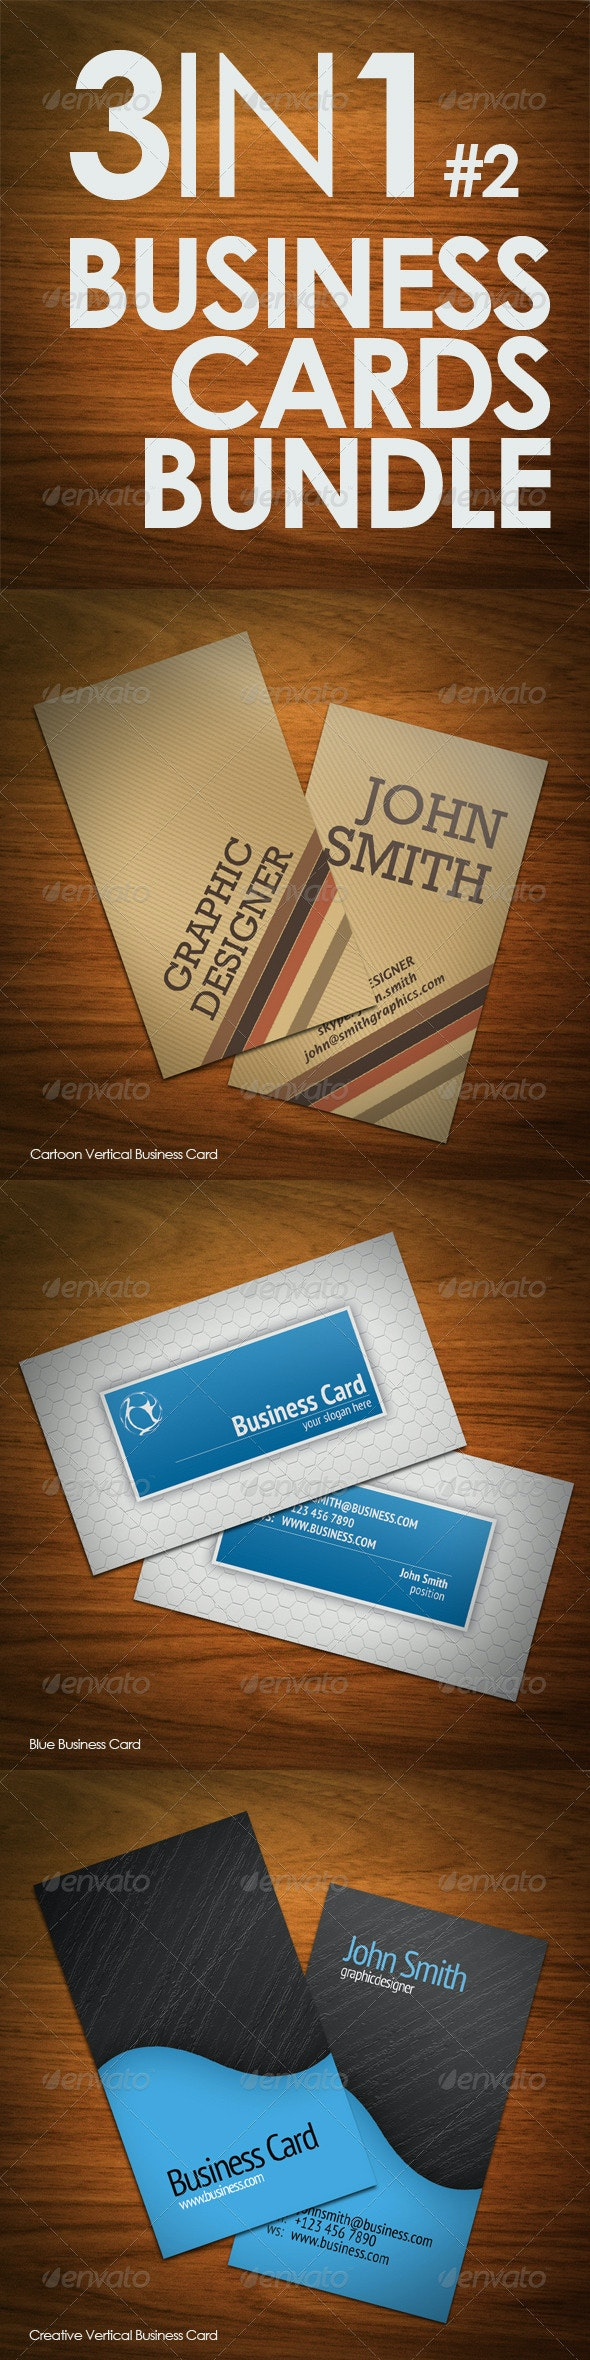 3in1 Business Cards Bundle #2 - Corporate Business Cards